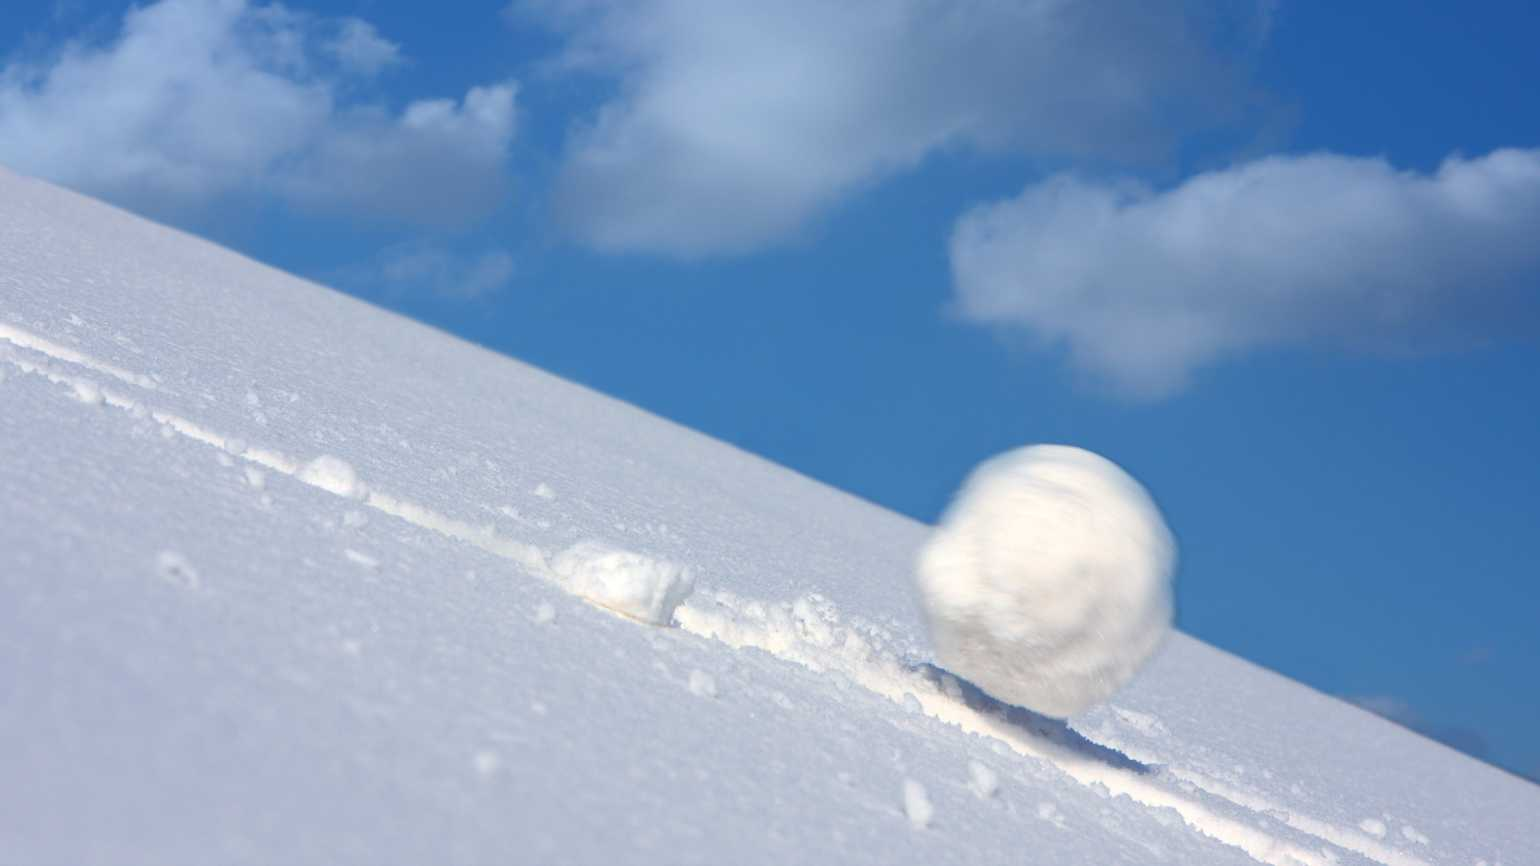 A large snowball tumbling down a snowy slope.